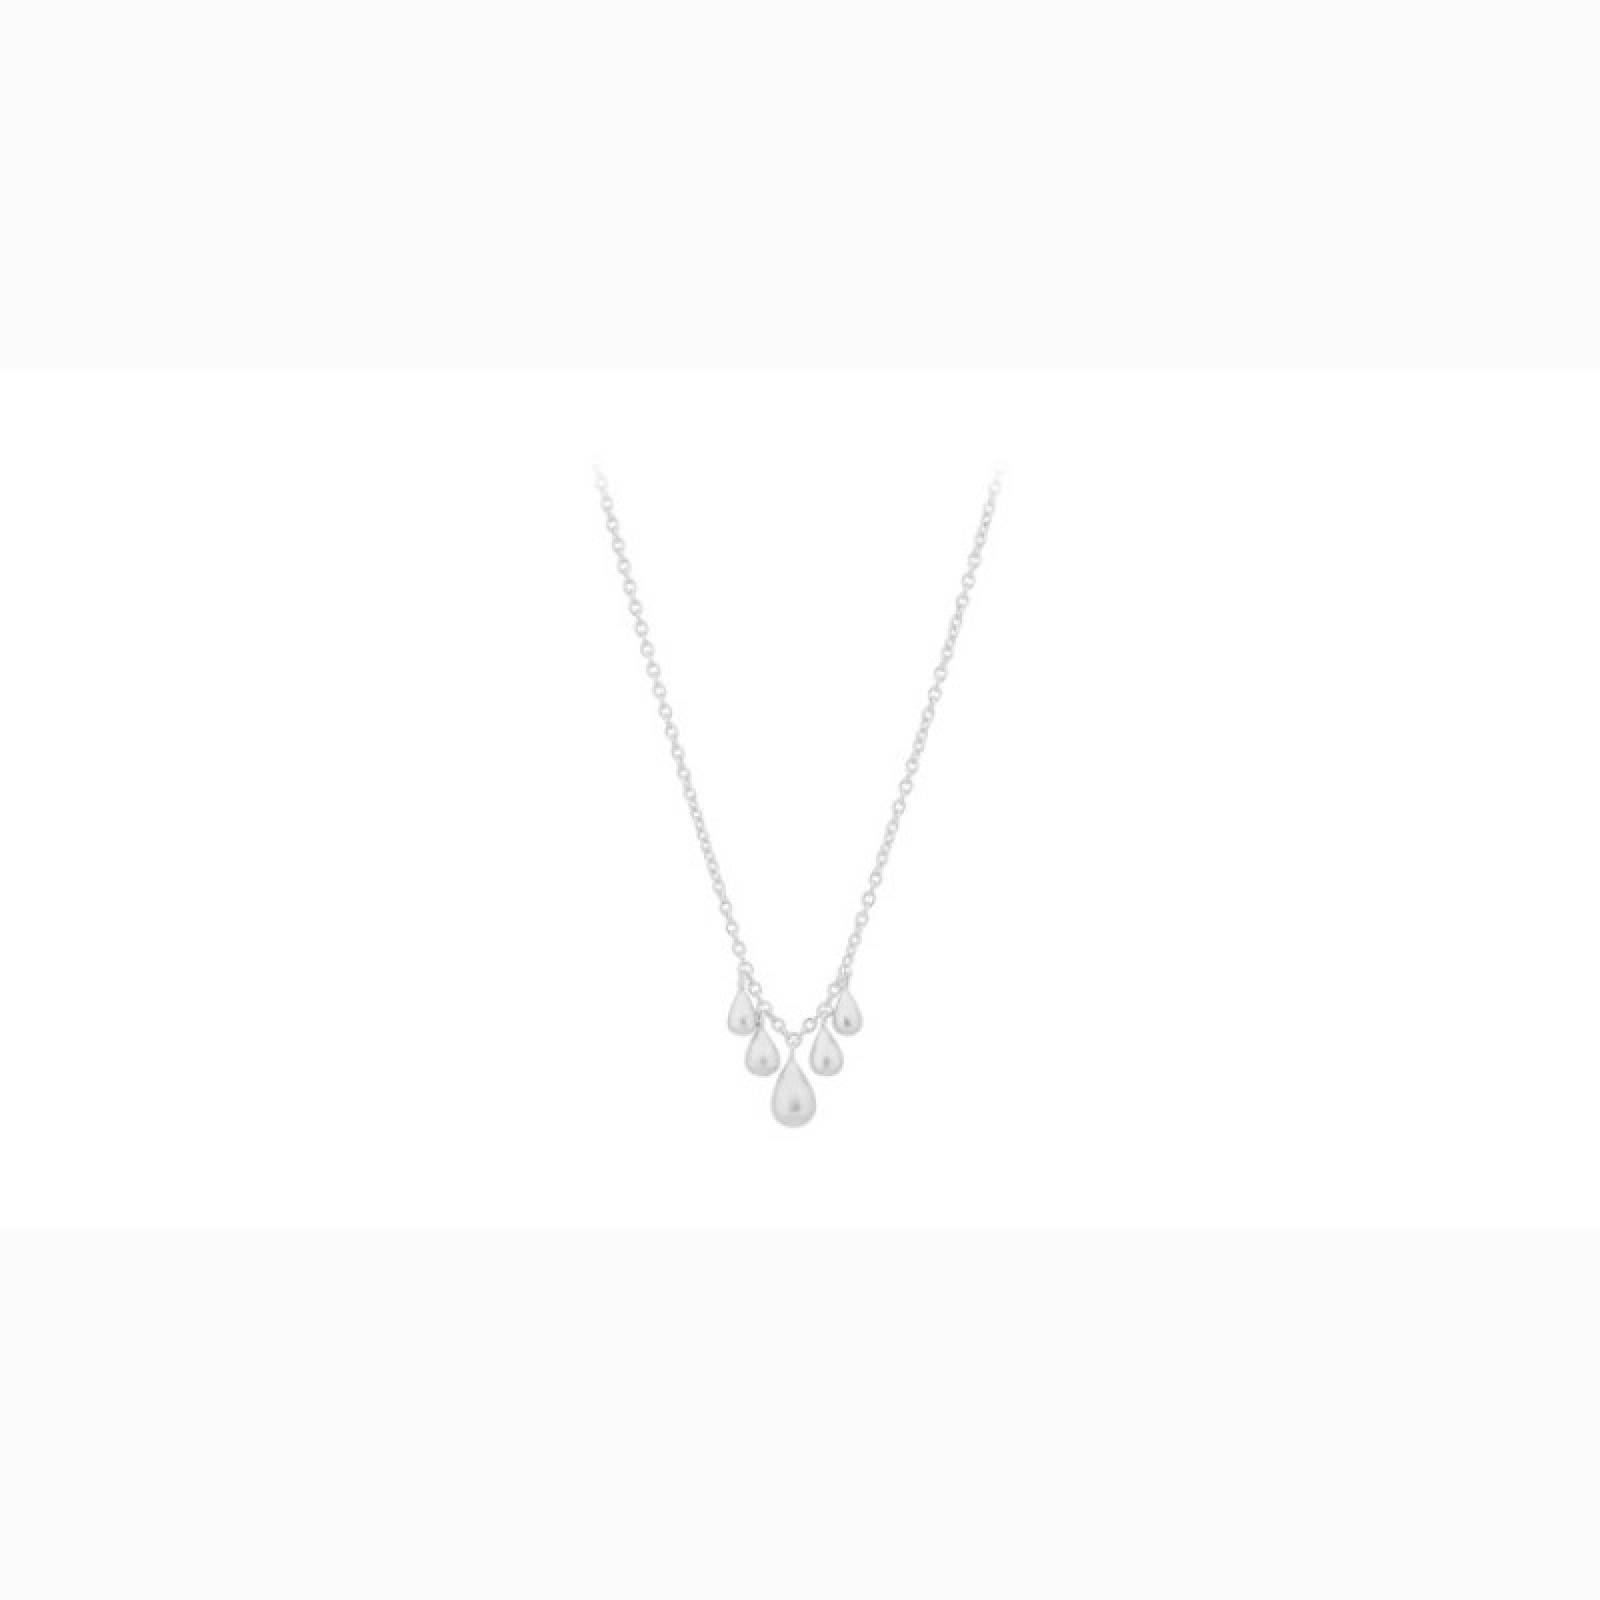 Waterdrop Necklace In Silver By Pernillle Corydon